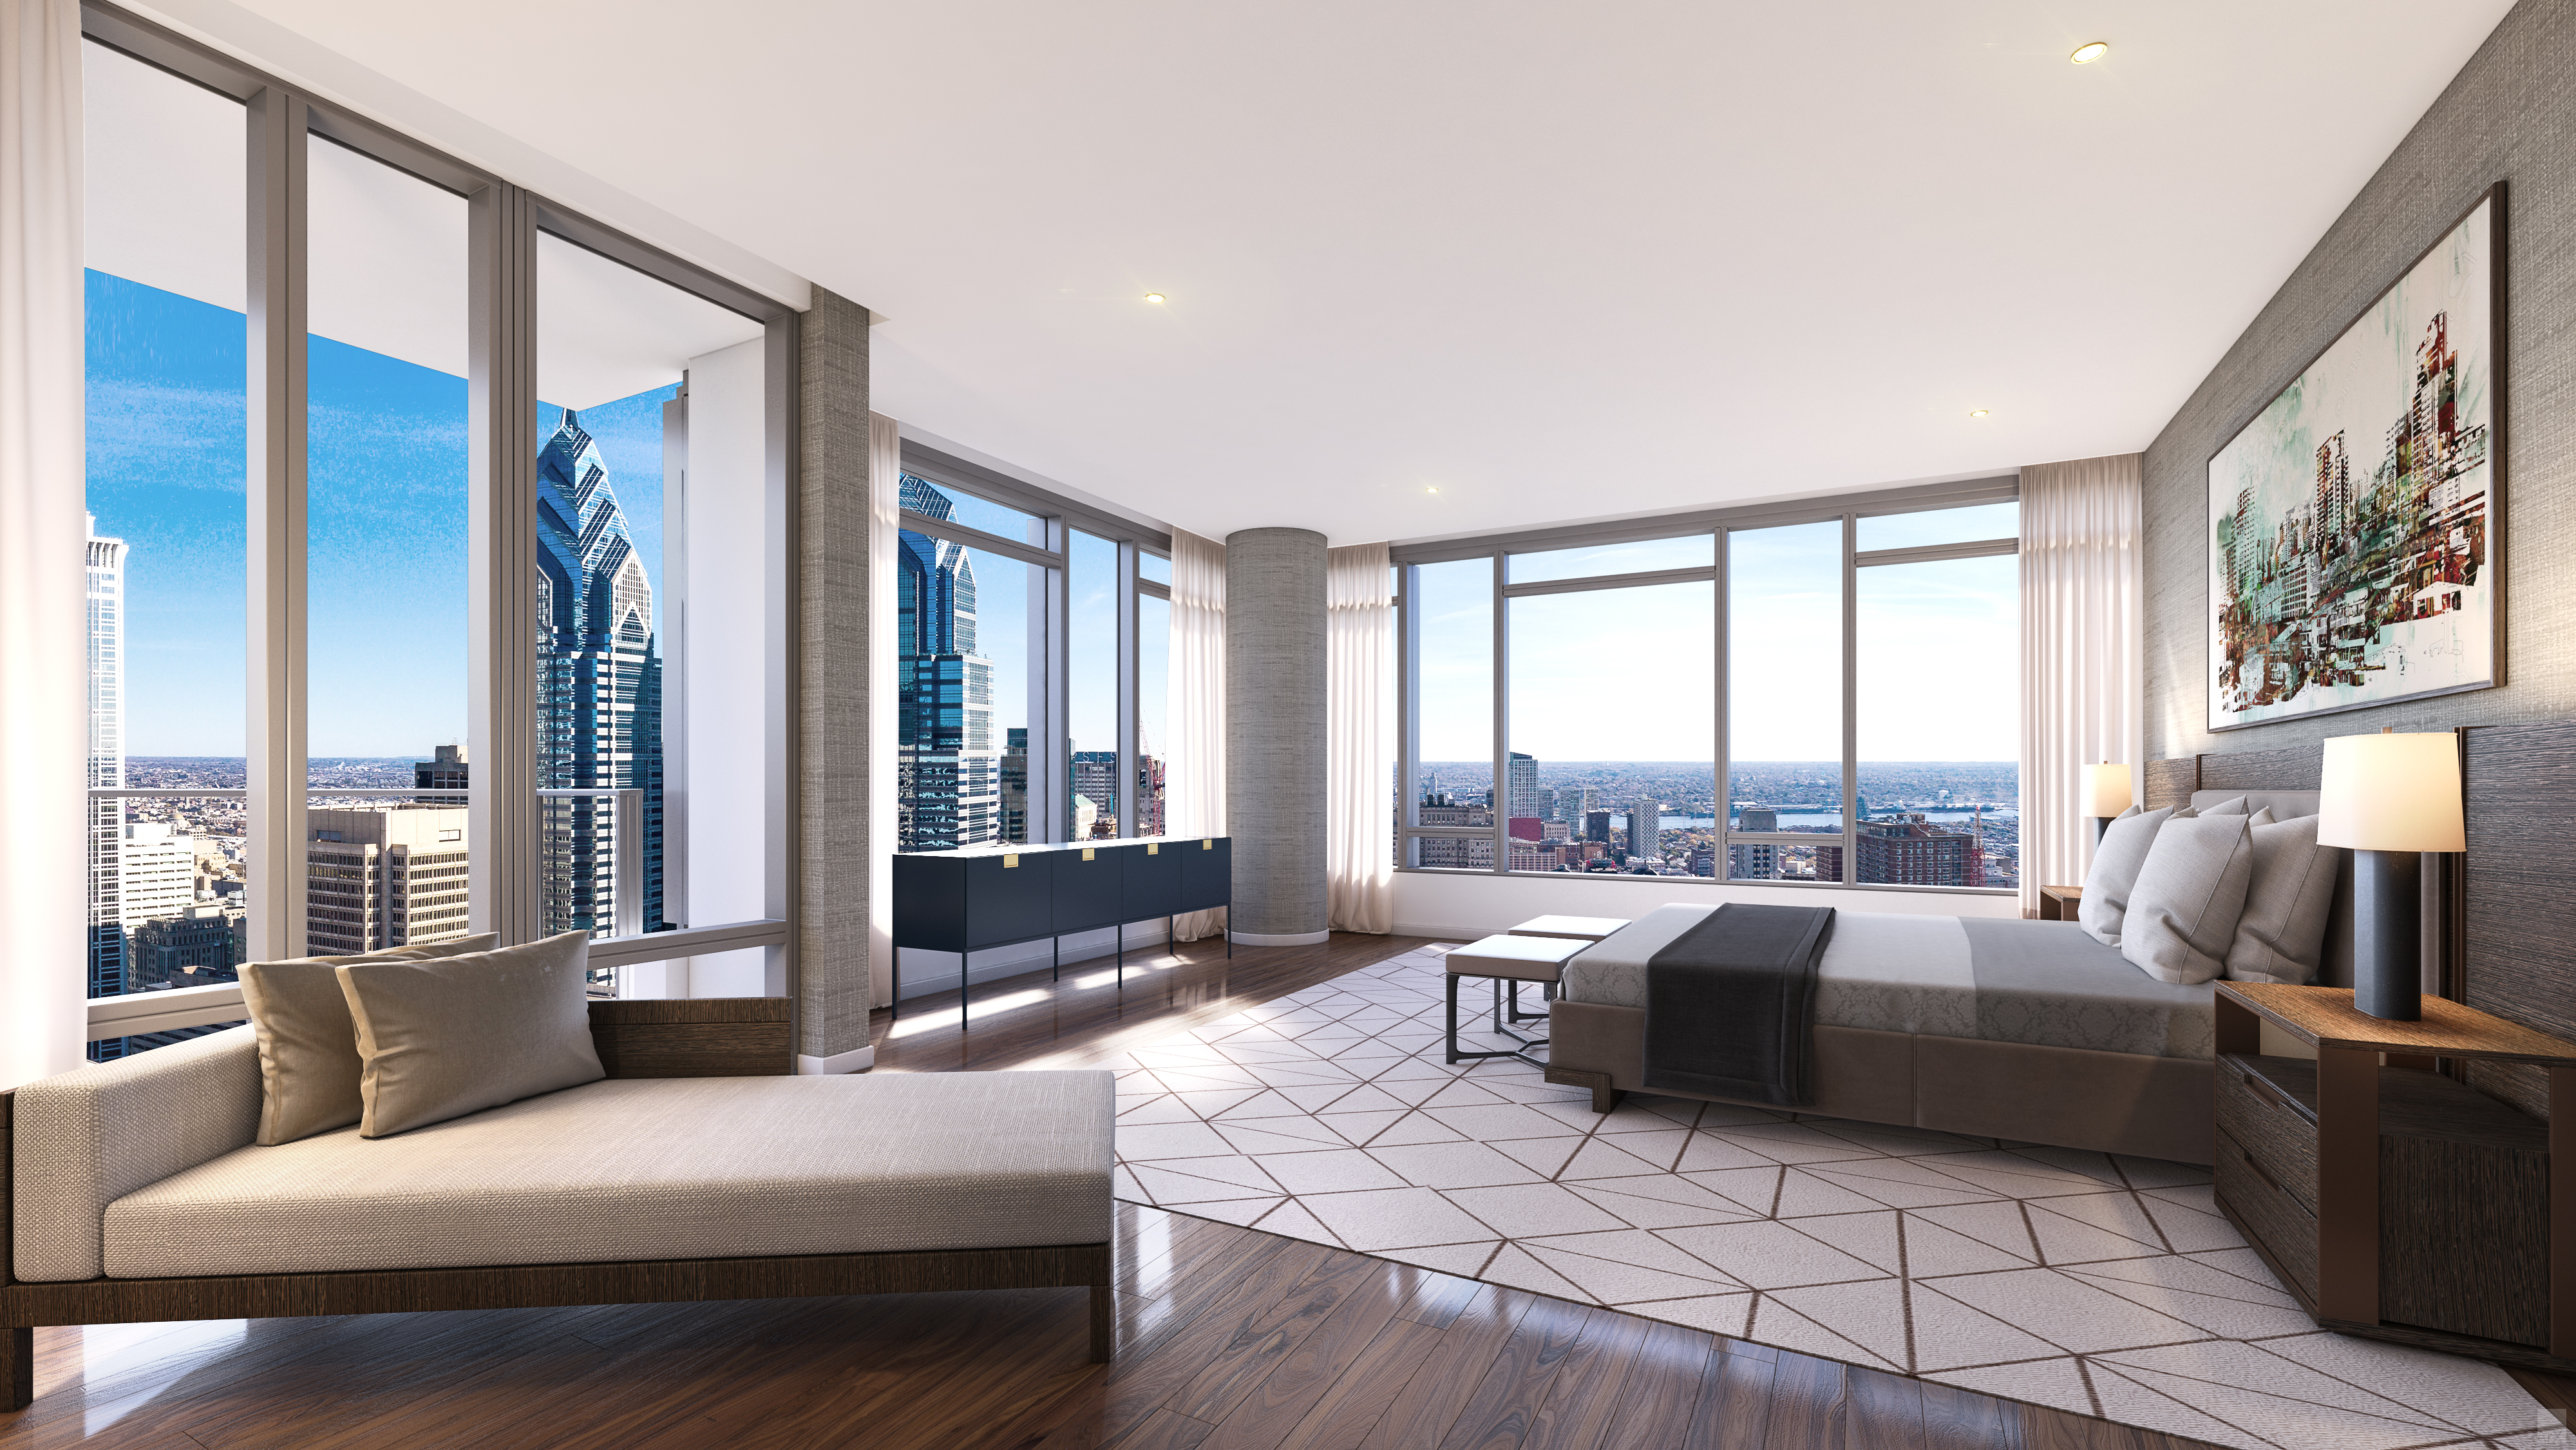 Inside the laurel at rittenhouse square